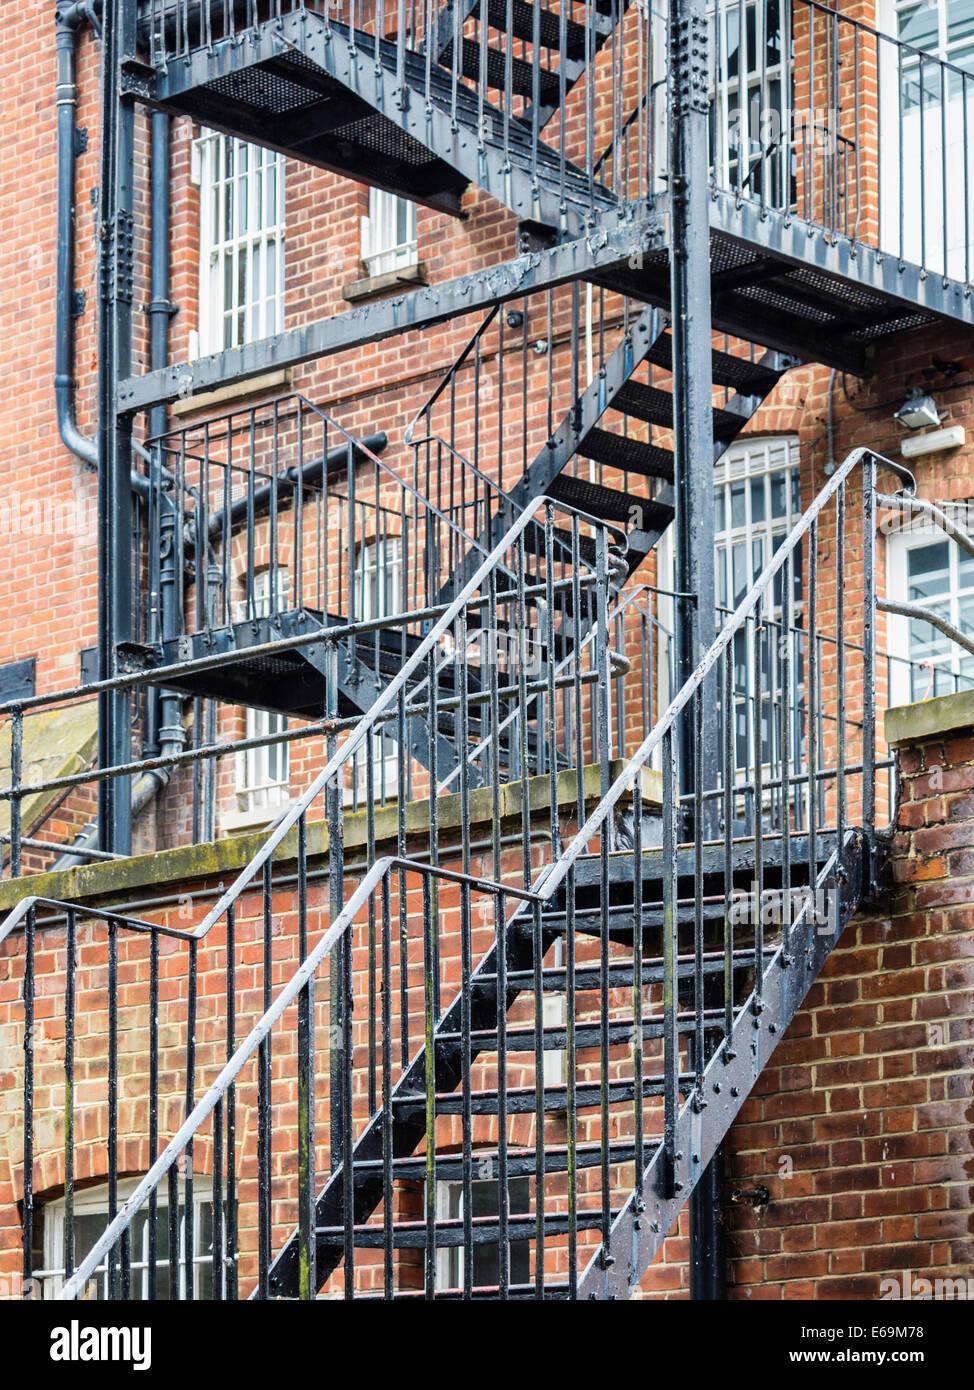 External Metal Staircase Fire Escape On Old Brick Building, Twickenham,  Middlesex, Greater London